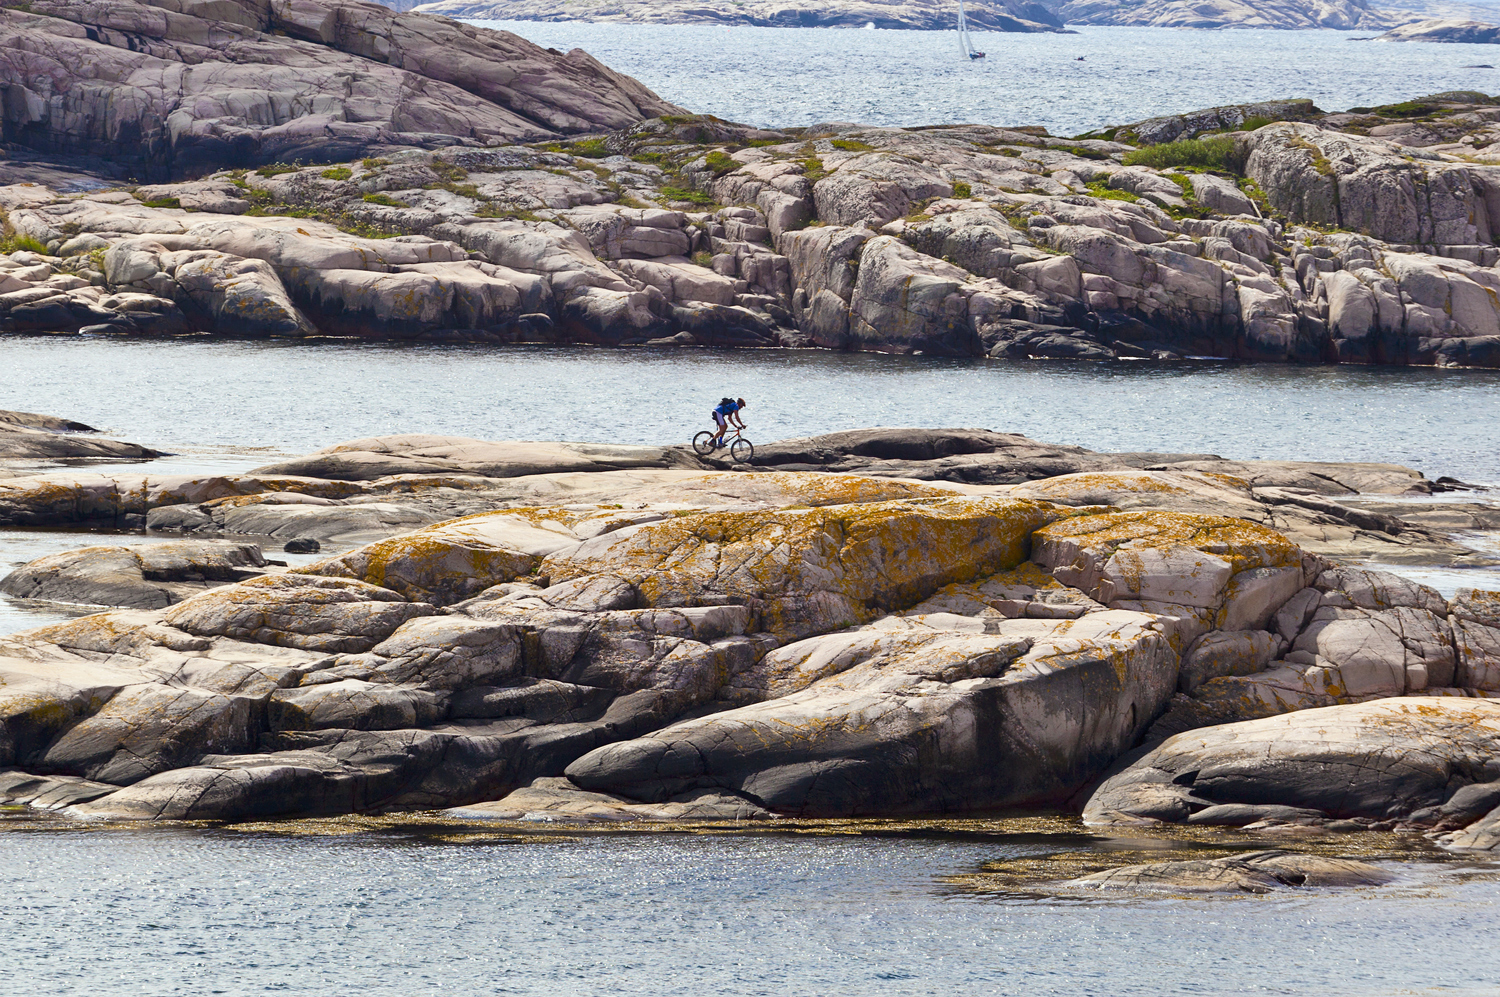 In the Archipelago    CYCLE    OVER    ROCKS    READ MORE